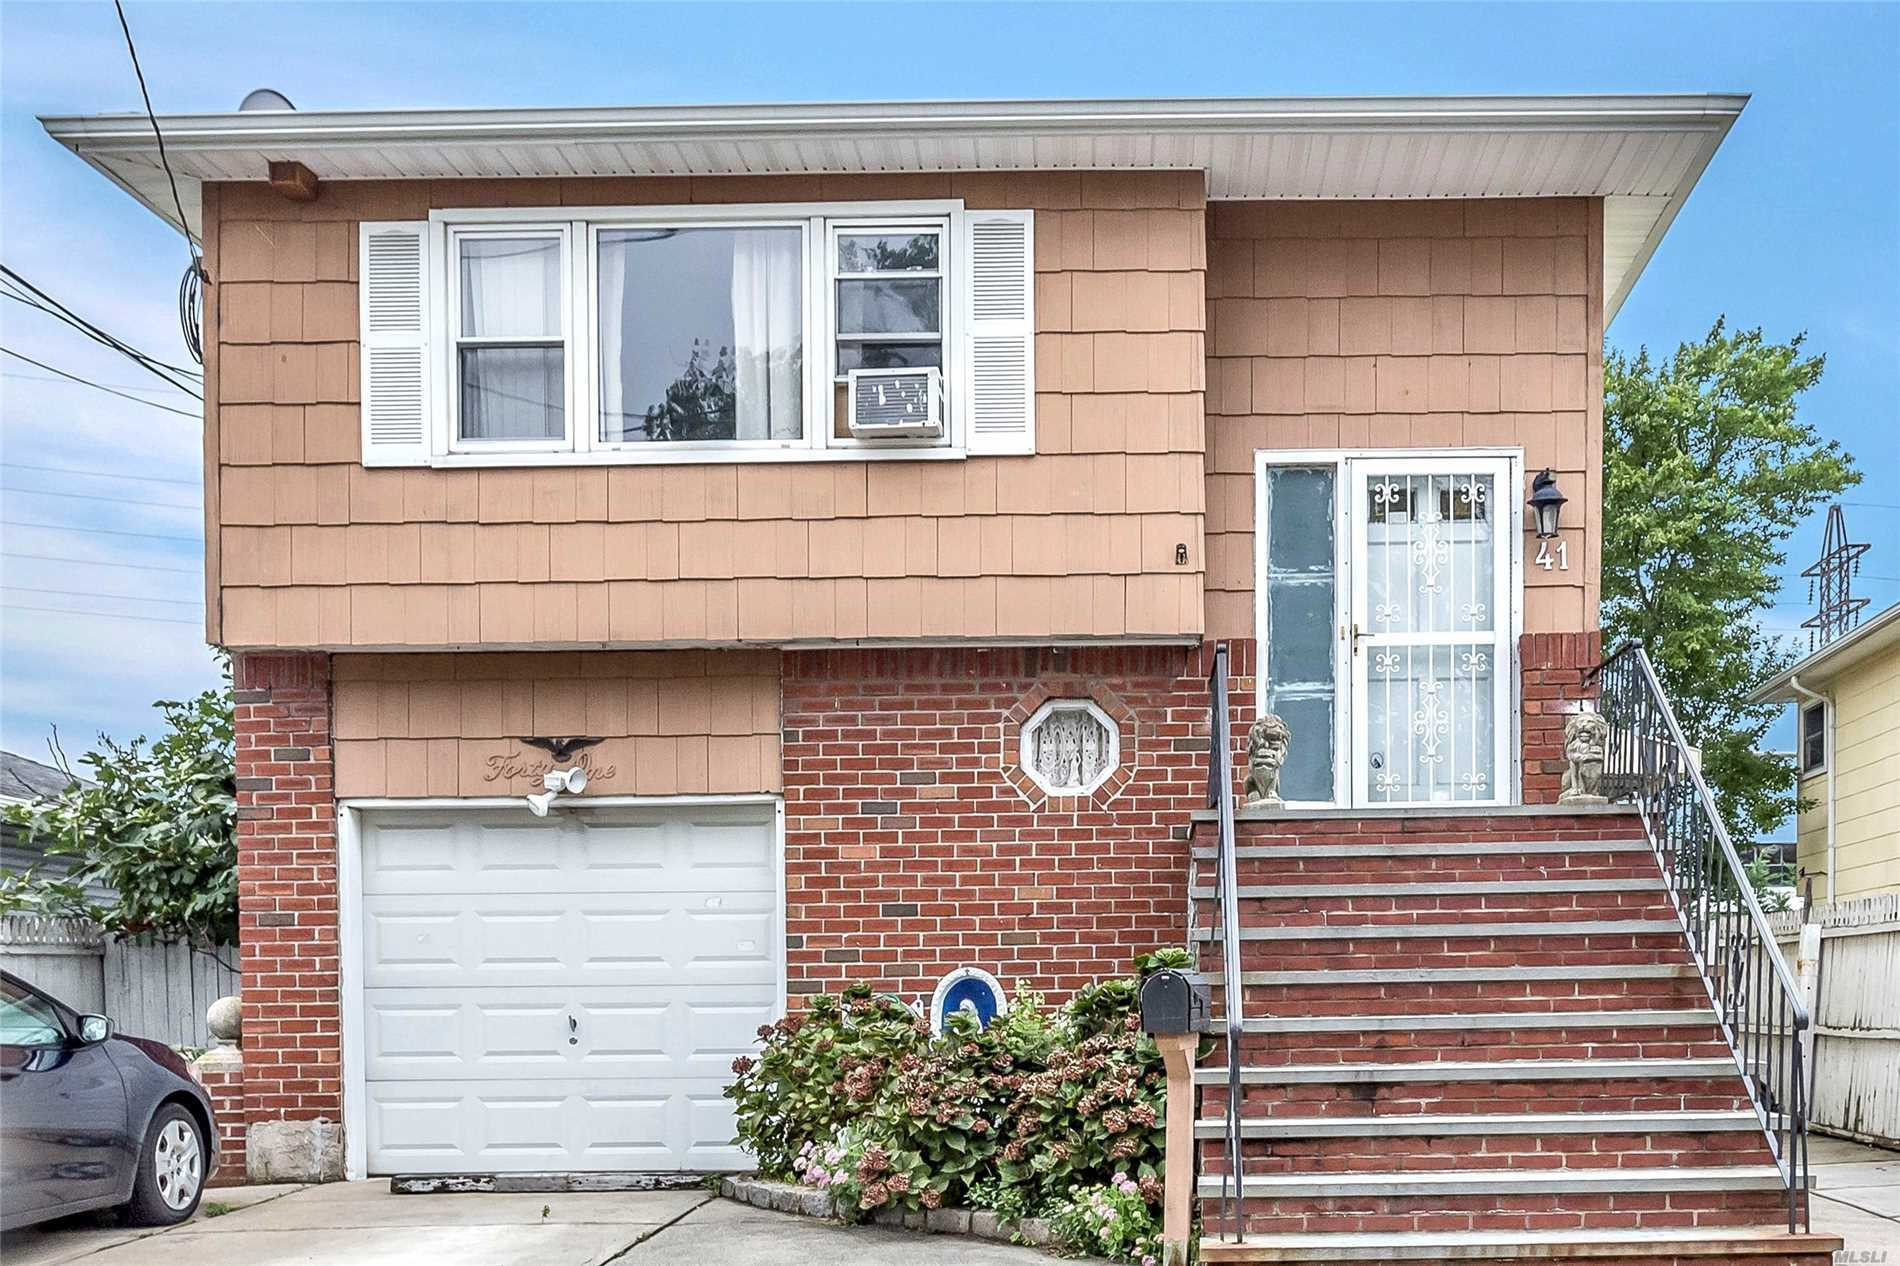 41 Dawes Ave - Lynbrook, New York